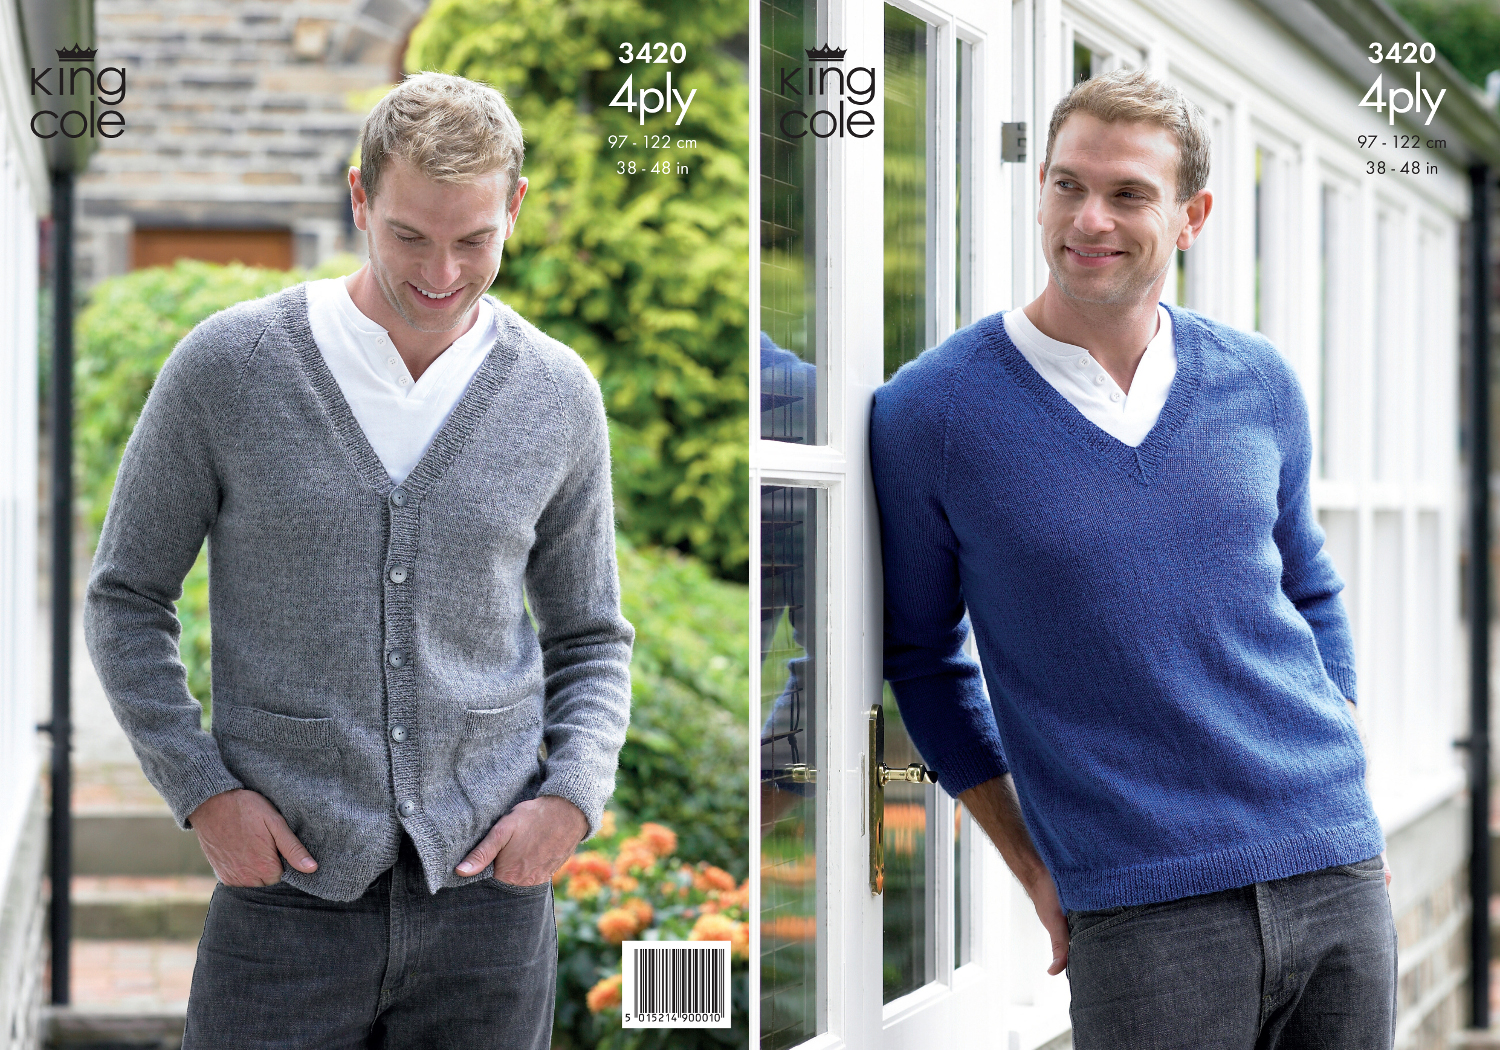 King Cole Mens Knitting Pattern Big Value 4 Ply V Neck Sweater ...